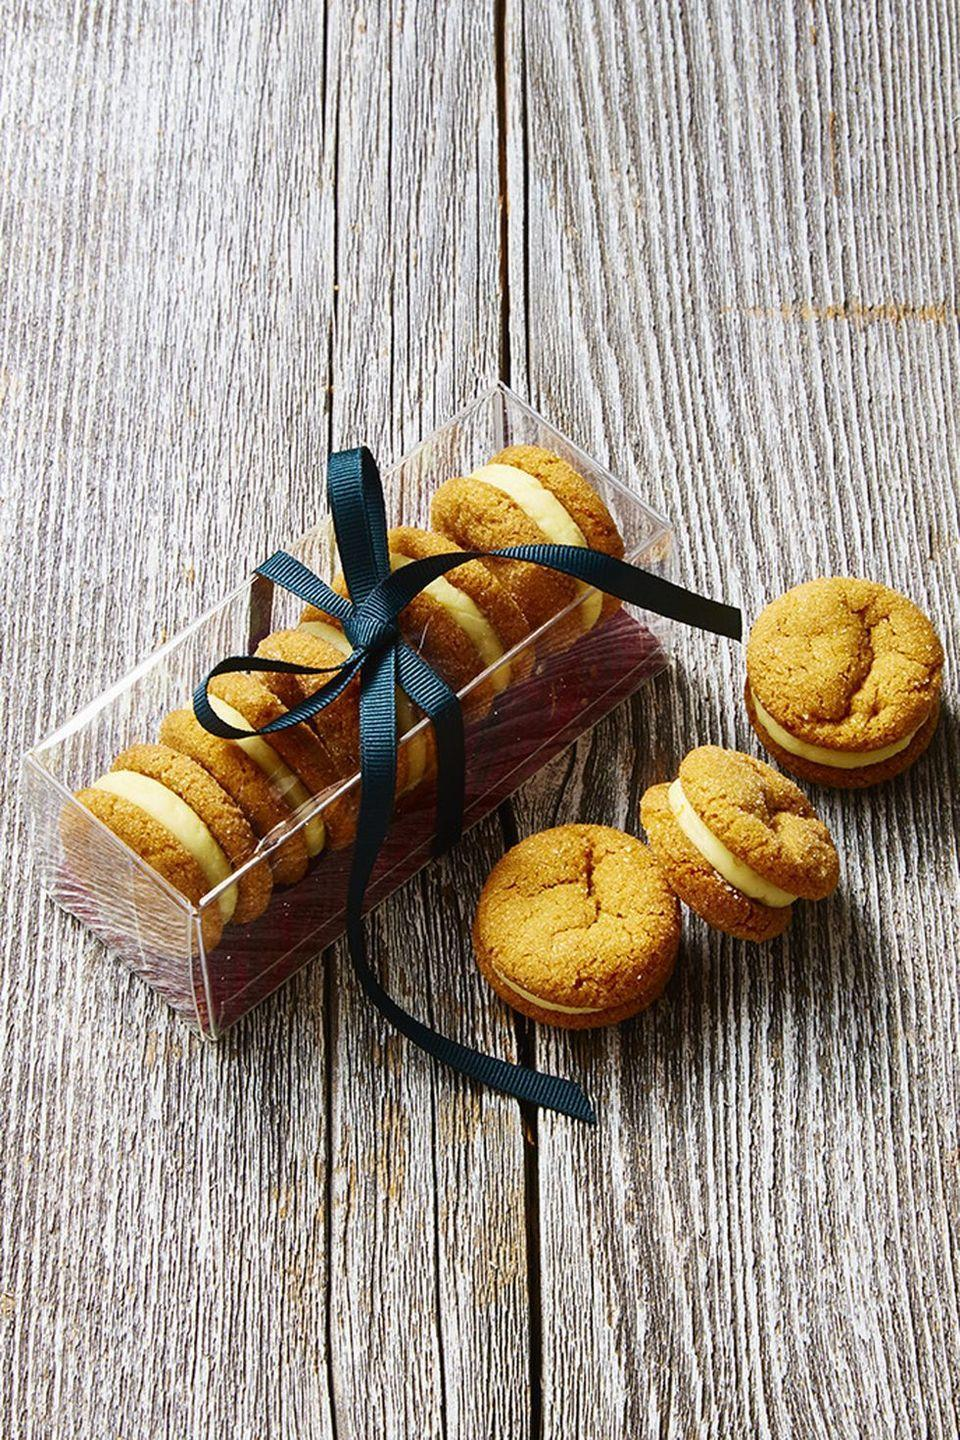 """<p>Biting into these spicy ginger and orange buttercream delights is like tasting fall. Seriously.</p><p><em><a href=""""https://www.goodhousekeeping.com/food-recipes/dessert/a46921/ginger-and-cream-sandwich-cookies-recipe/"""" rel=""""nofollow noopener"""" target=""""_blank"""" data-ylk=""""slk:Get the recipe for Ginger and Cream Sandwich Cookies »"""" class=""""link rapid-noclick-resp"""">Get the recipe for Ginger and Cream Sandwich Cookies »</a></em></p><p><strong>RELATED: </strong><a href=""""https://www.goodhousekeeping.com/food-recipes/dessert/g32815642/fall-cookies/"""" rel=""""nofollow noopener"""" target=""""_blank"""" data-ylk=""""slk:45 Tasty Fall Cookies to Get You in the Pumpkin Spice Spirit"""" class=""""link rapid-noclick-resp"""">45 Tasty Fall Cookies to Get You in the Pumpkin Spice Spirit</a></p>"""